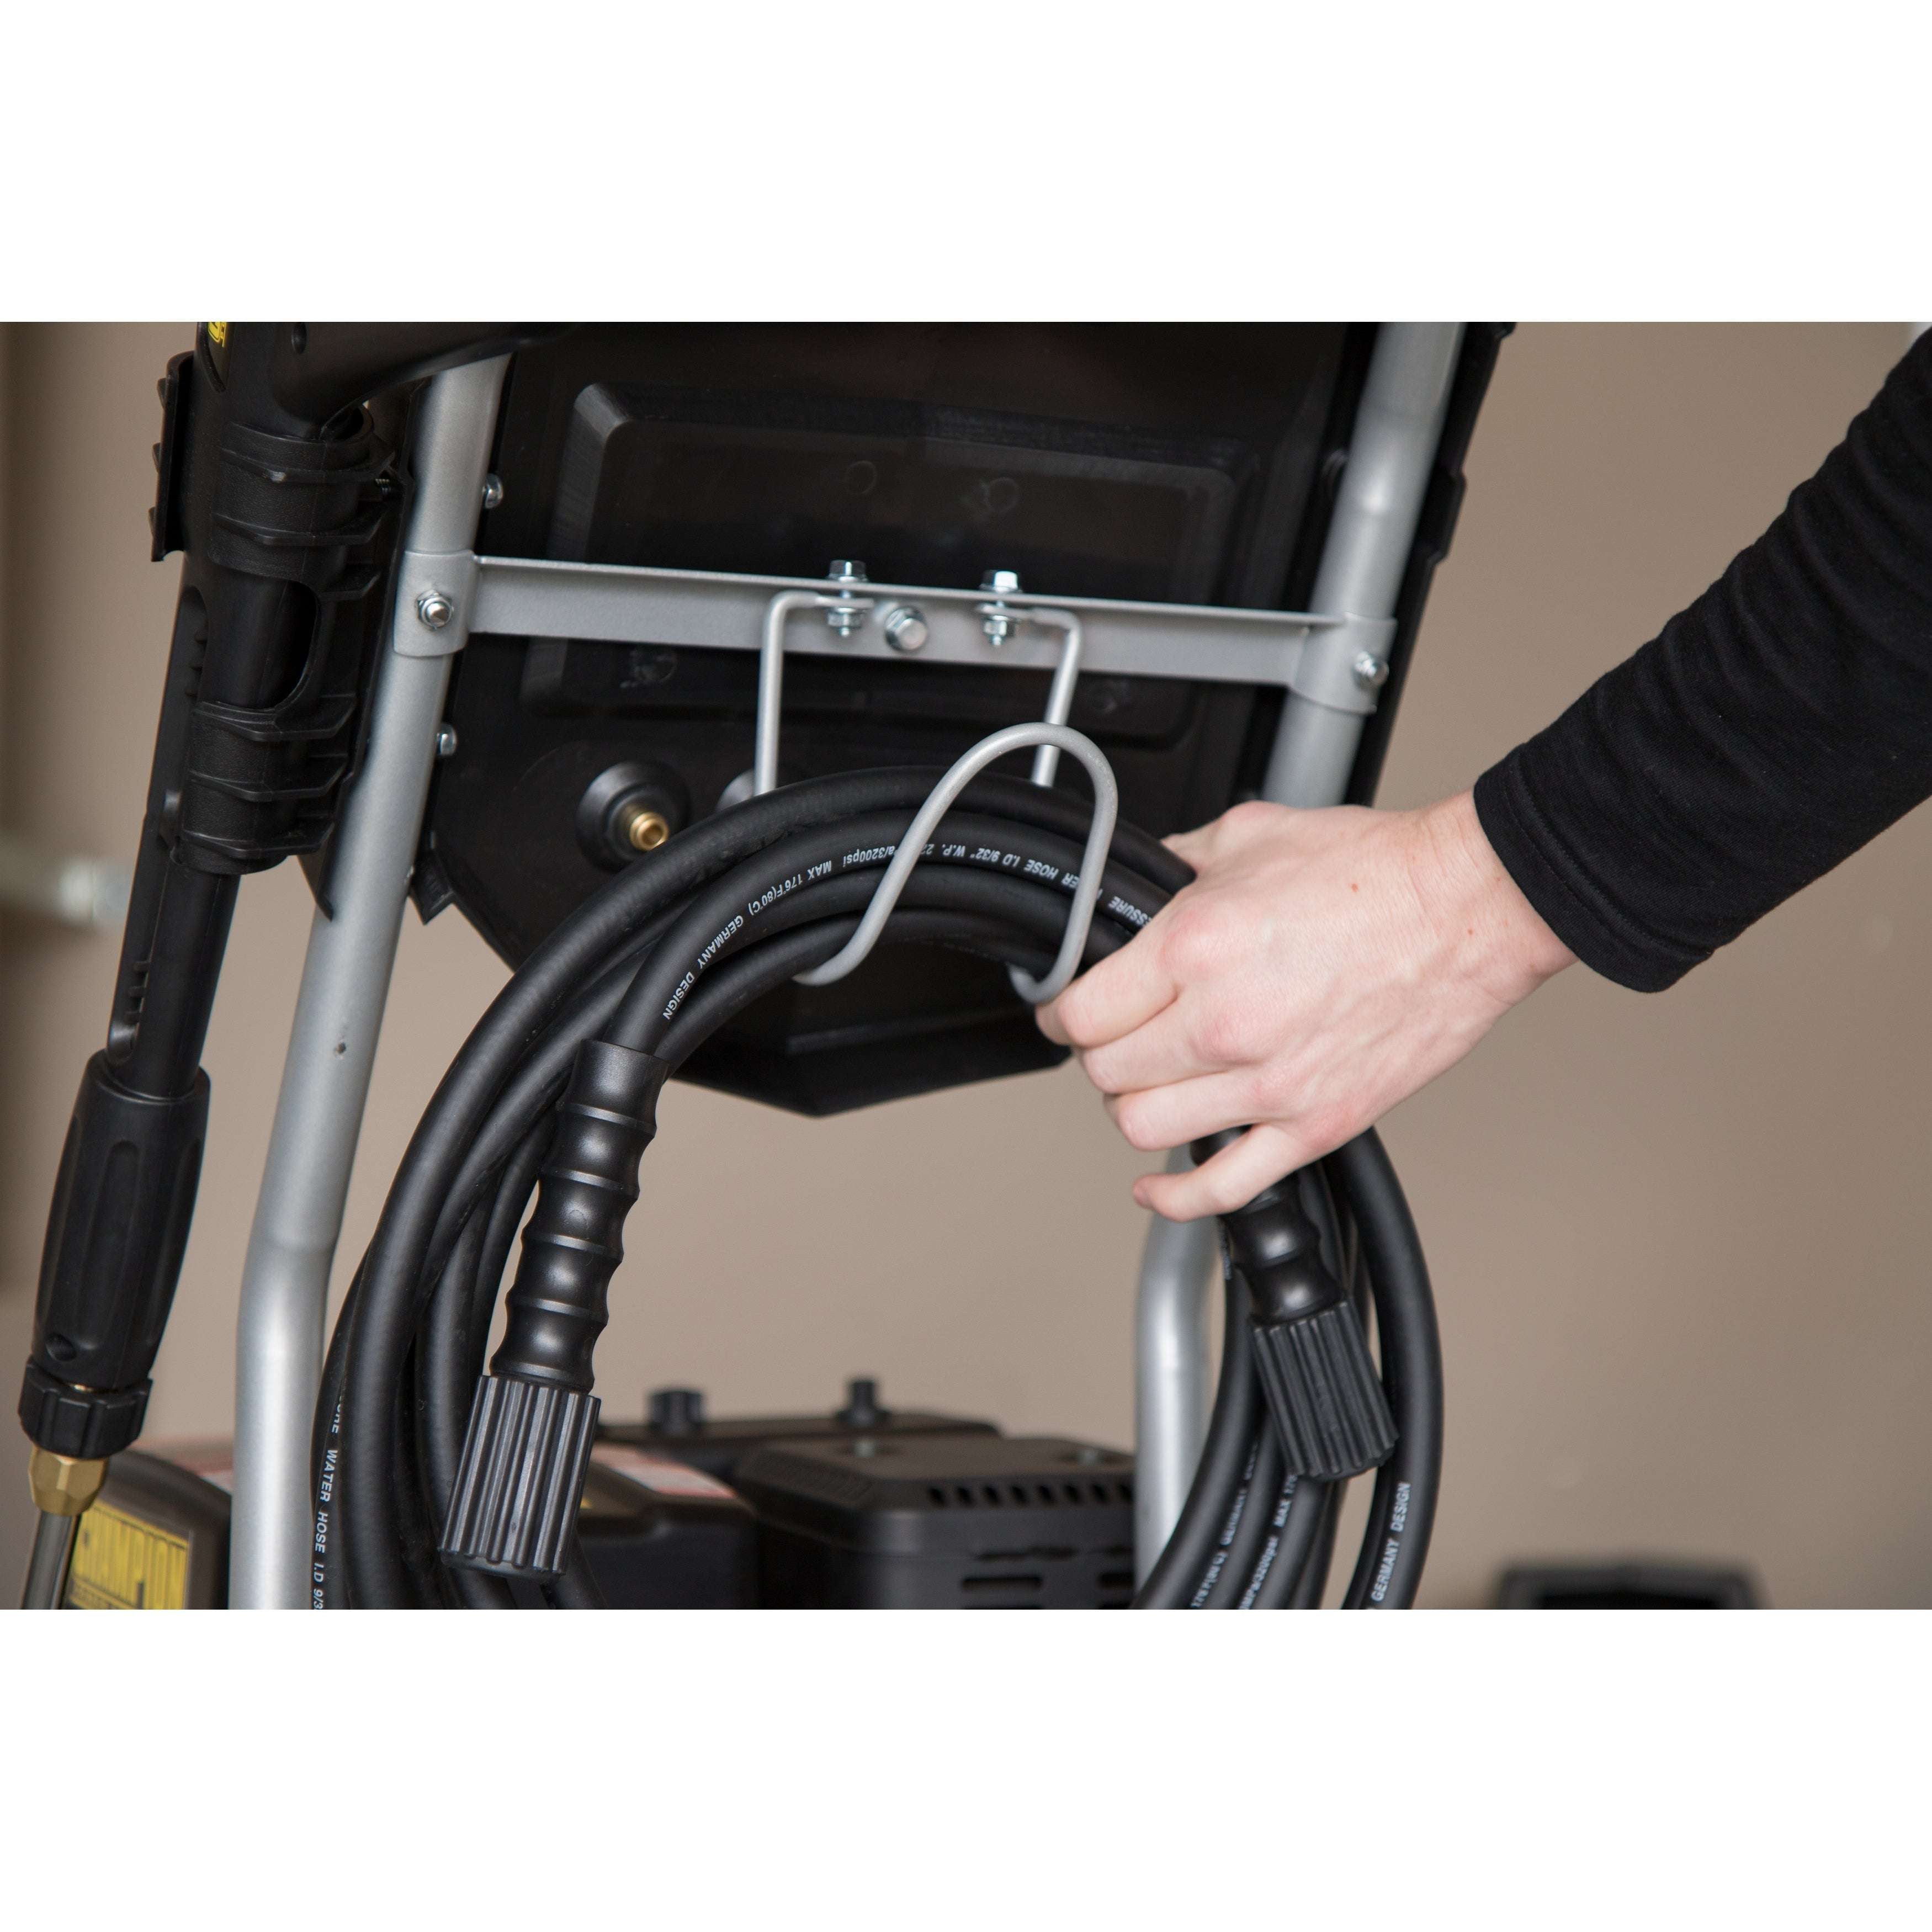 Champion 3200-PSI 2.4-GPM Dolly-Style Gas Pressure Washer...